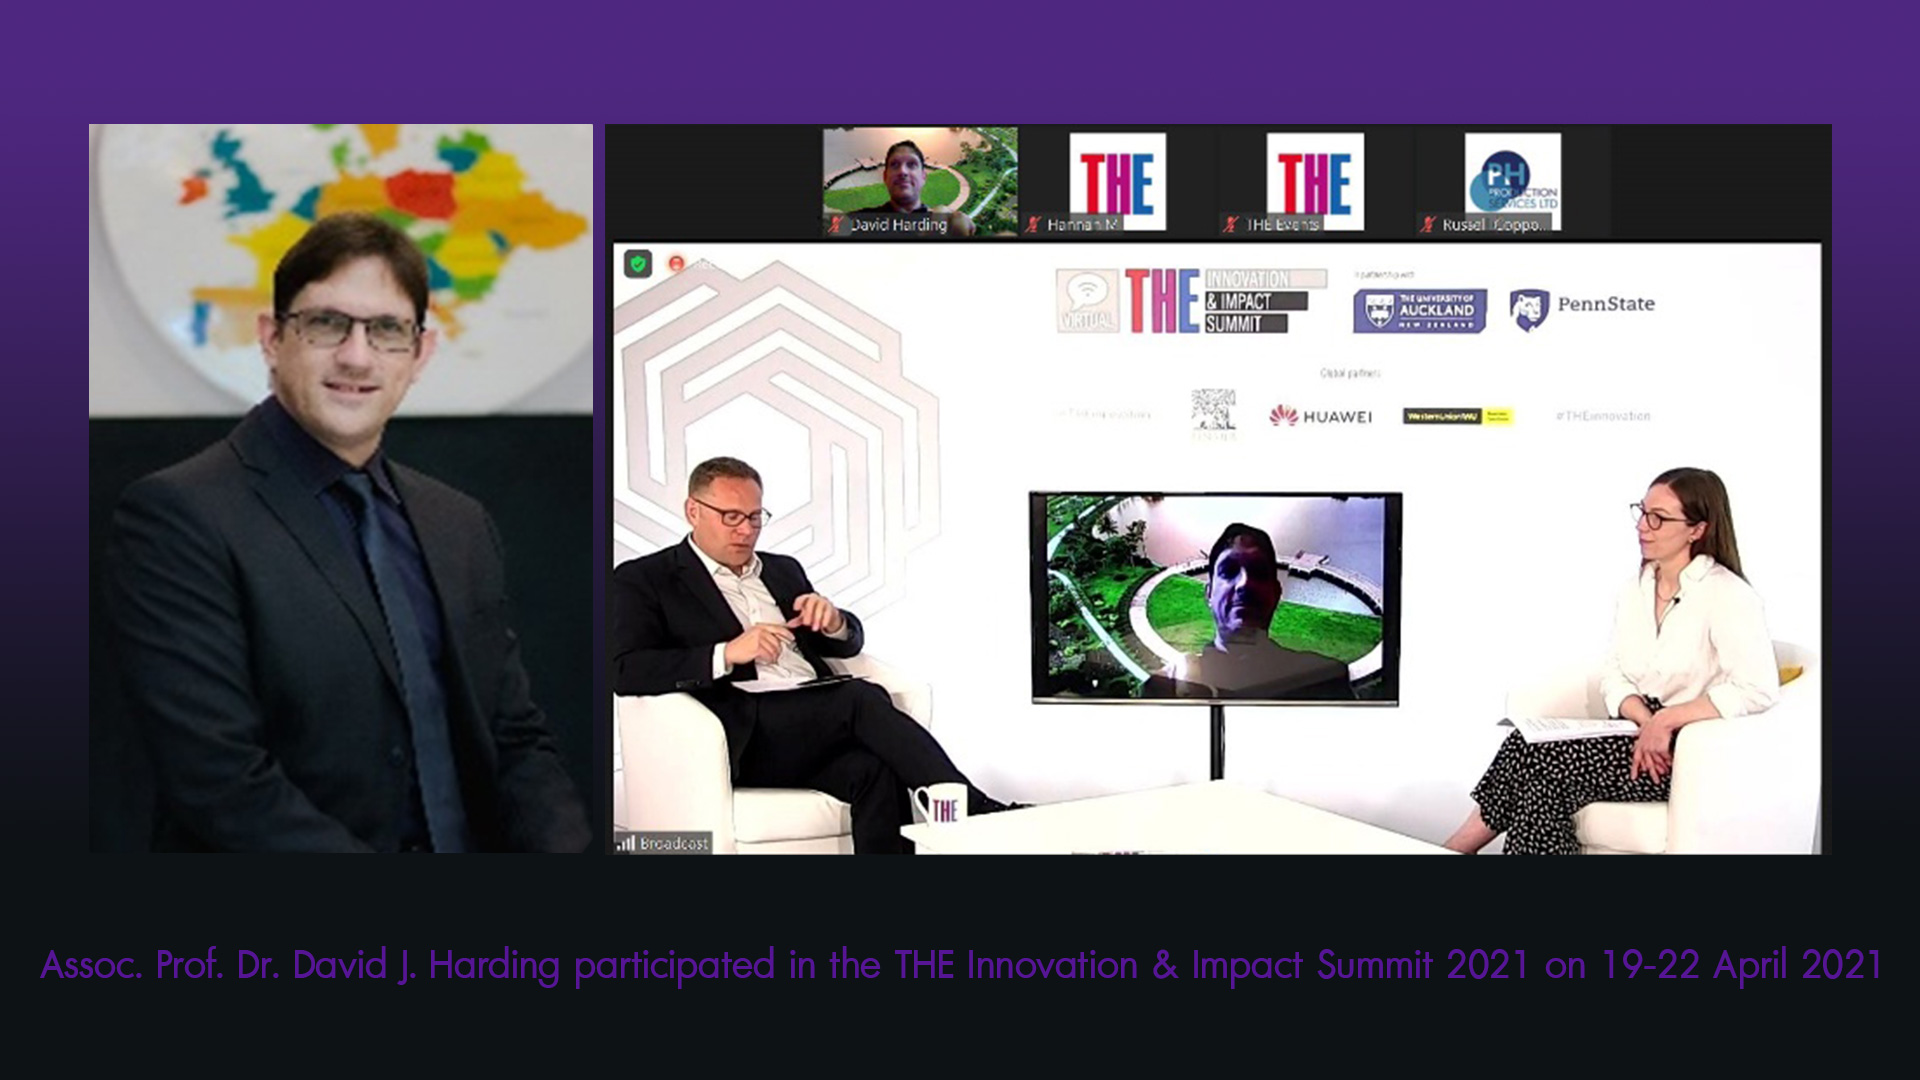 Assoc. Prof. Dr. David J. Harding participated in the THE Innovation & Impact Summit 2021 on 19-22 April 2021